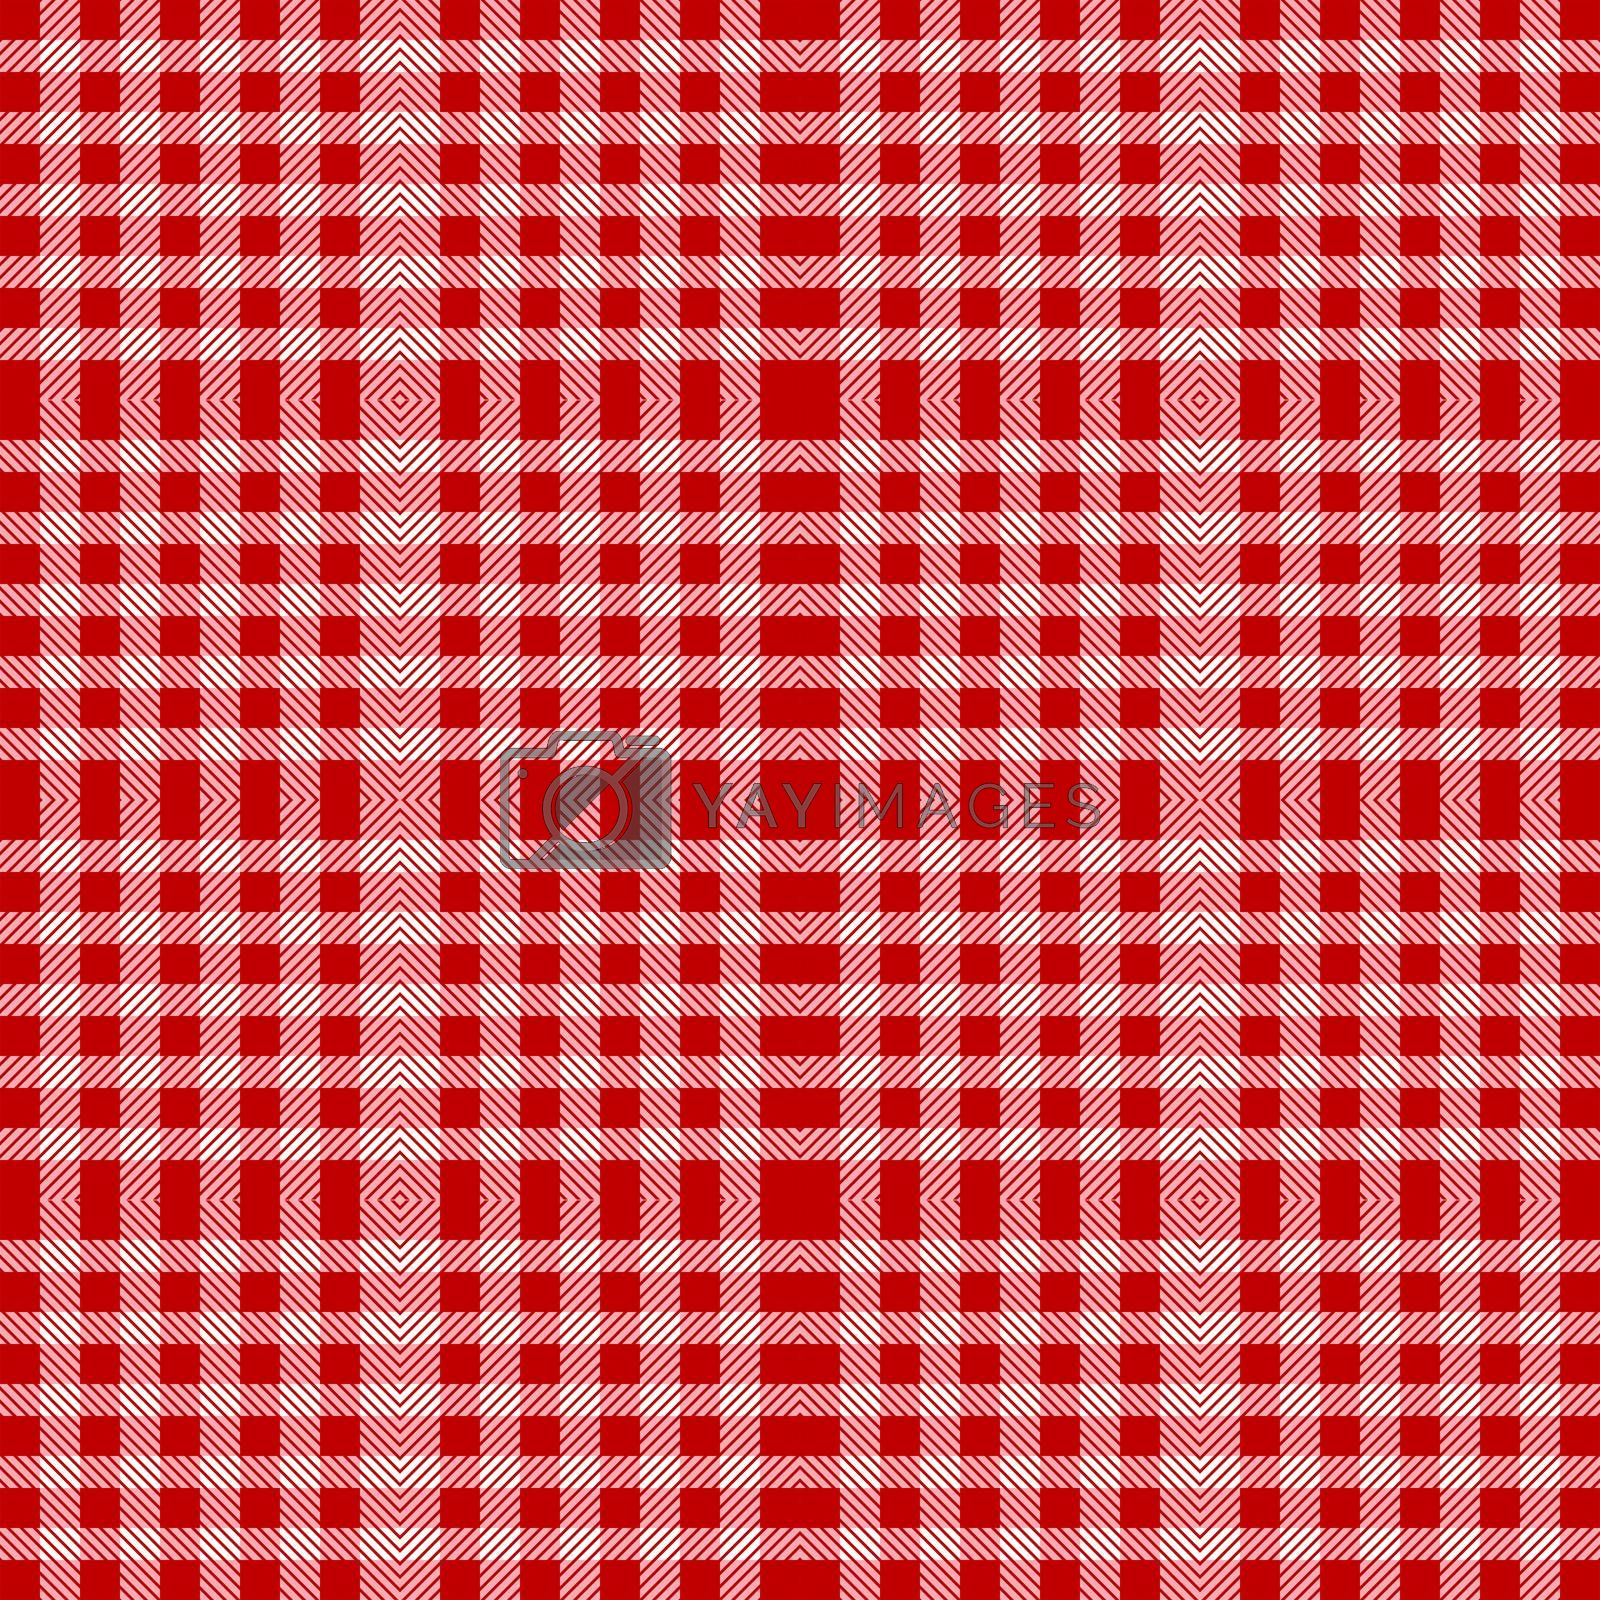 Red tablecloth texture seamless pattern